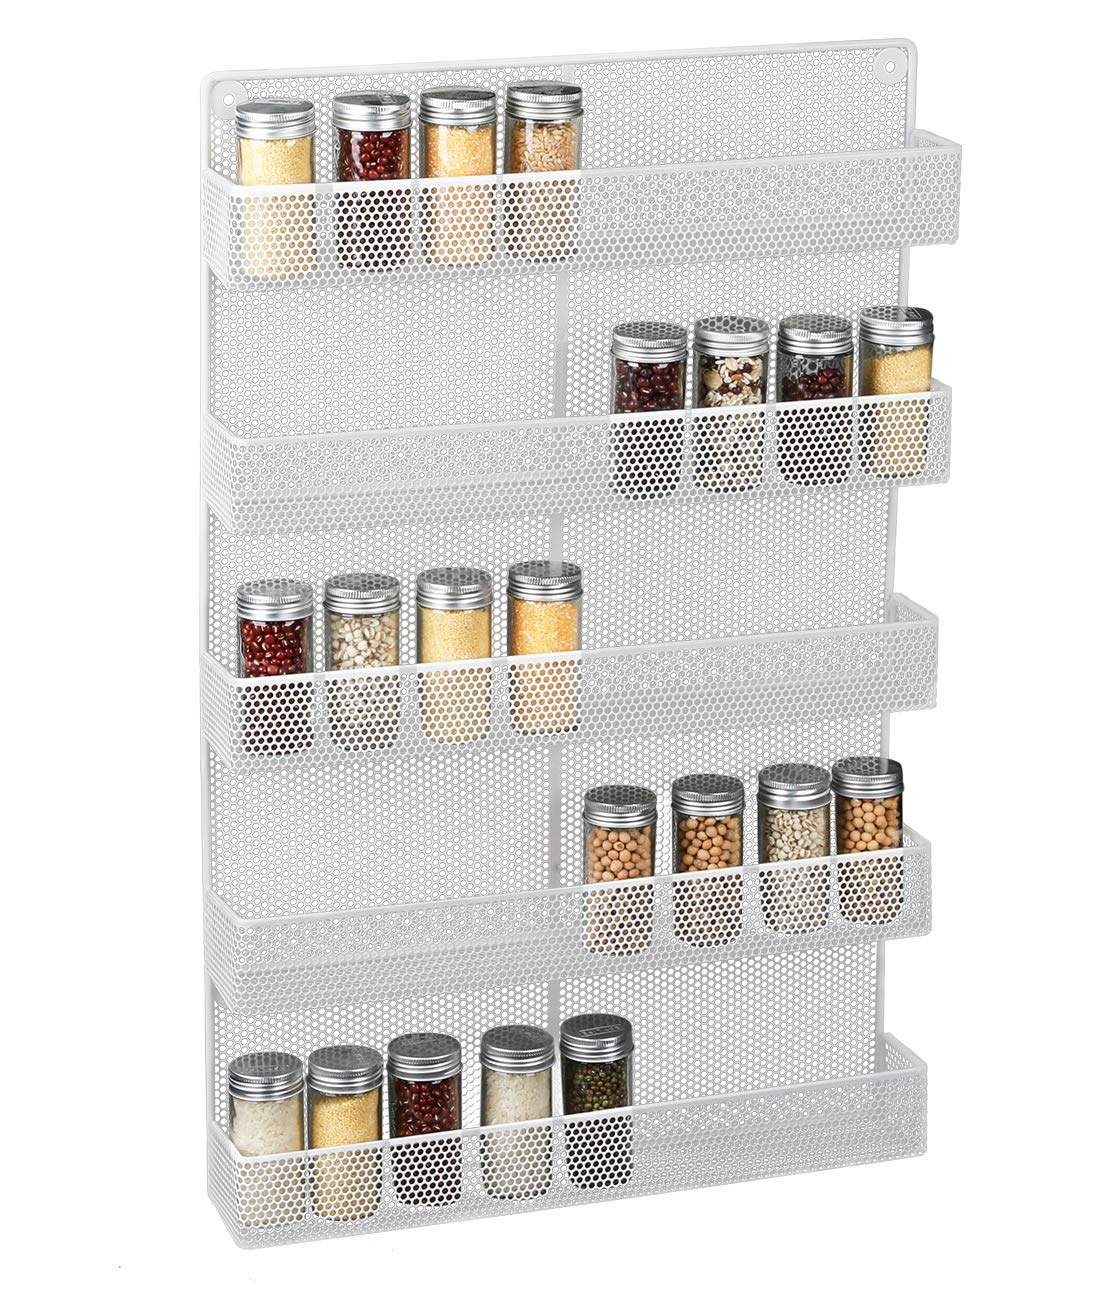 Denozer 5 Tier Wall Mounted Large Spice Rack Organizer, White by Denozer